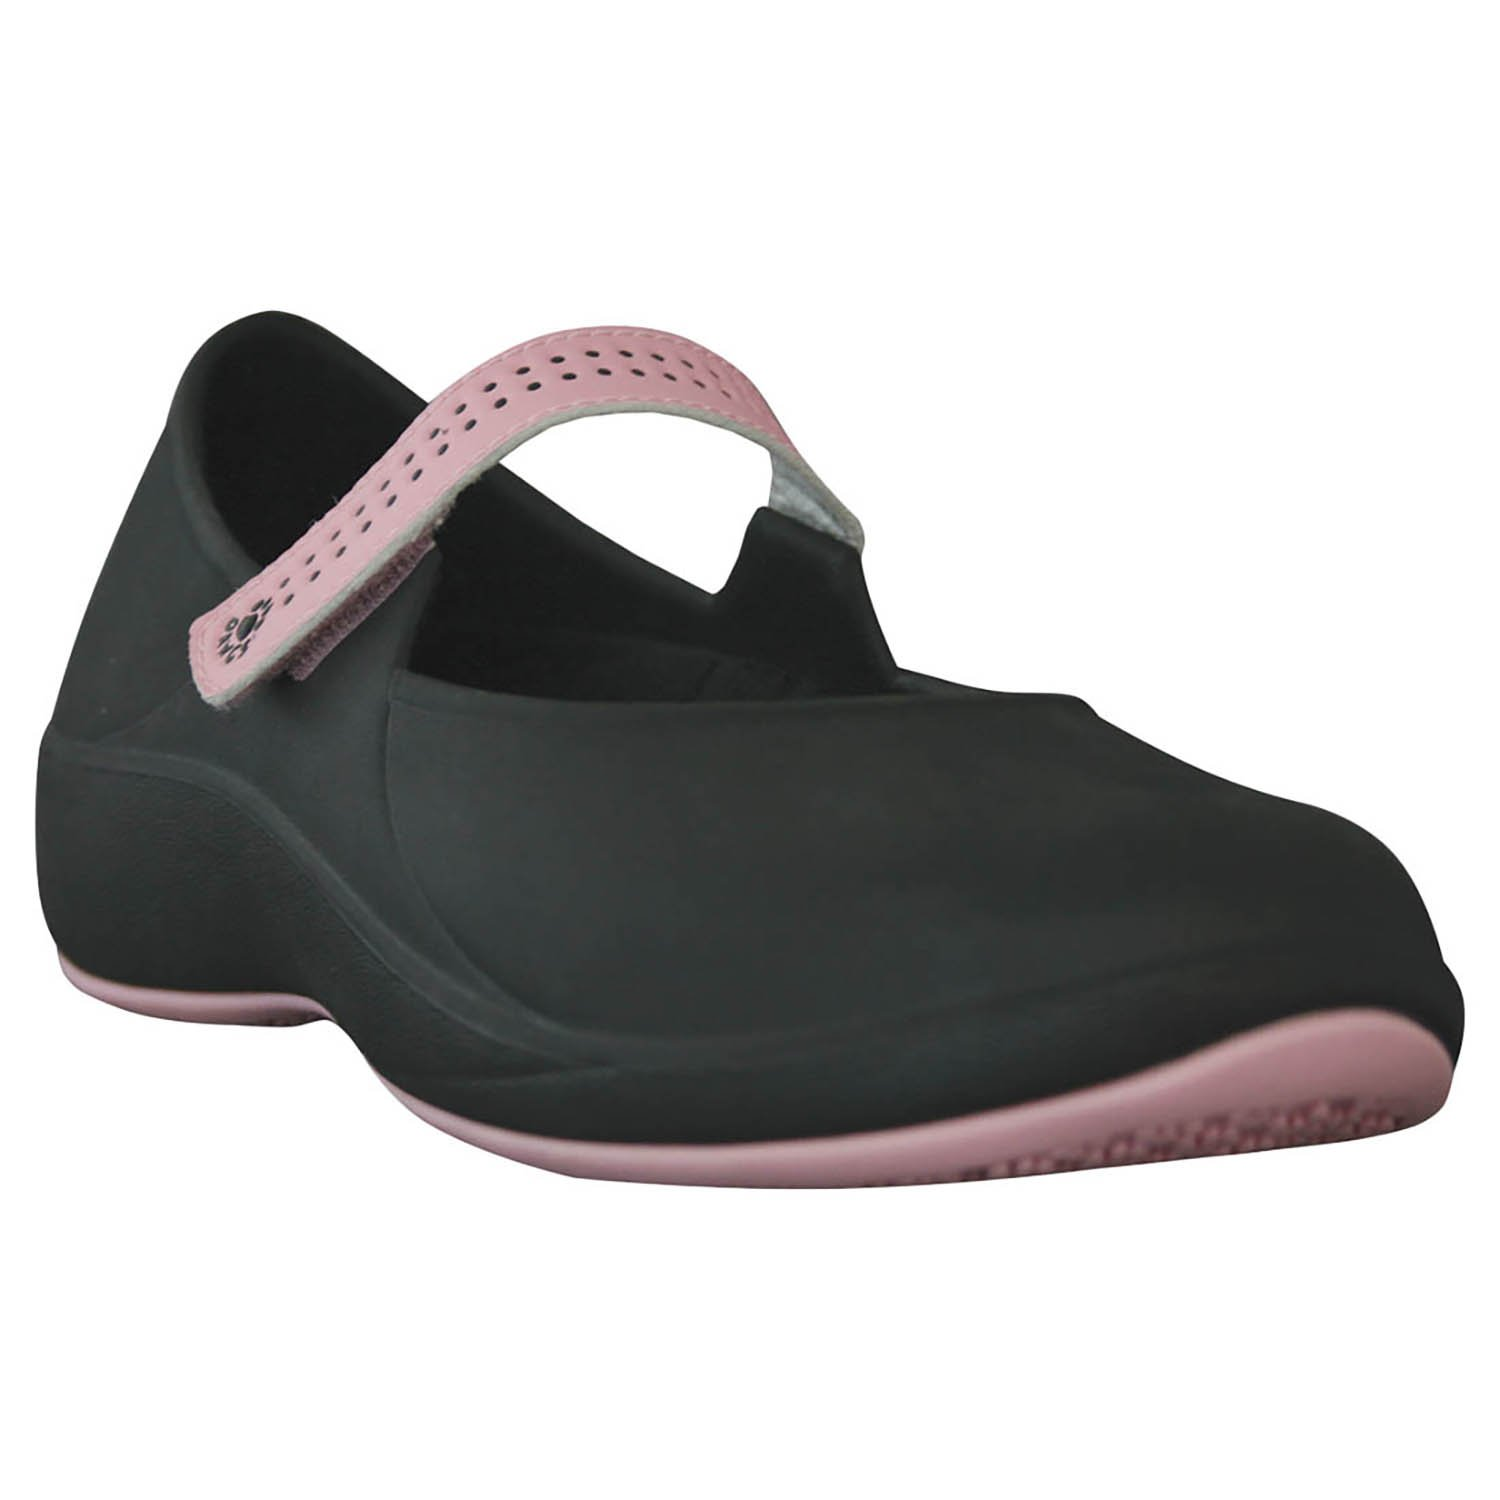 DAWGS Women's Mary Jane Pro Slip Resistant Work Shoe B004M0T1RW 6 B(M) US|Black/Soft Pink